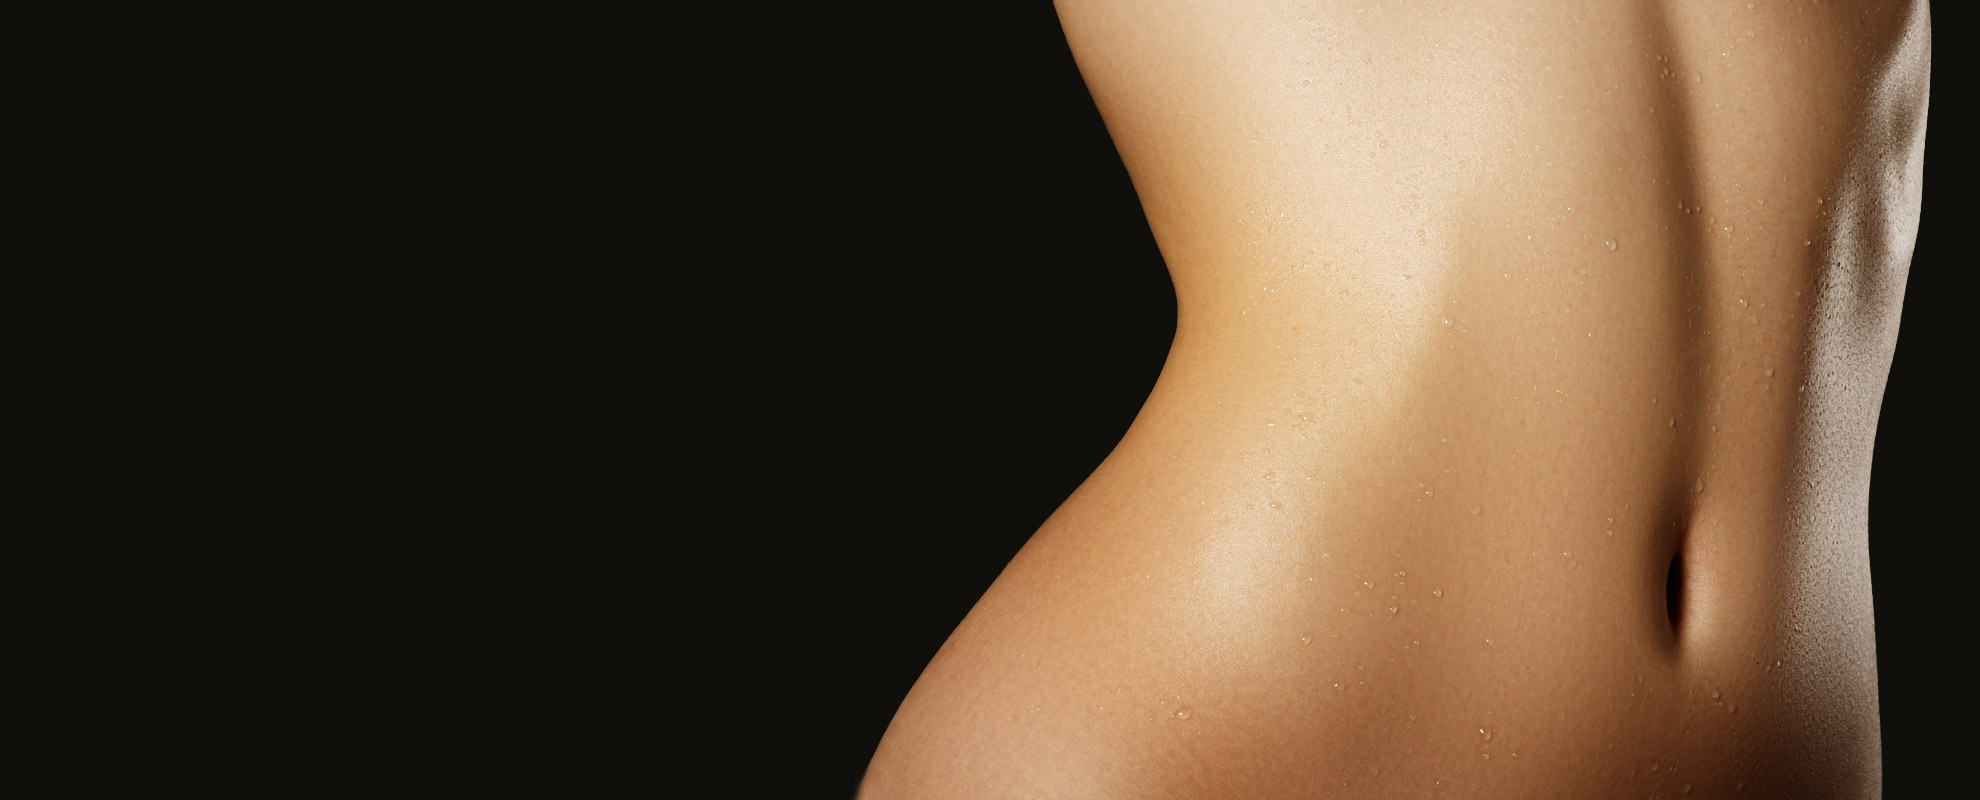 Liposuction Washington Dc Lipoplasty Northern Va